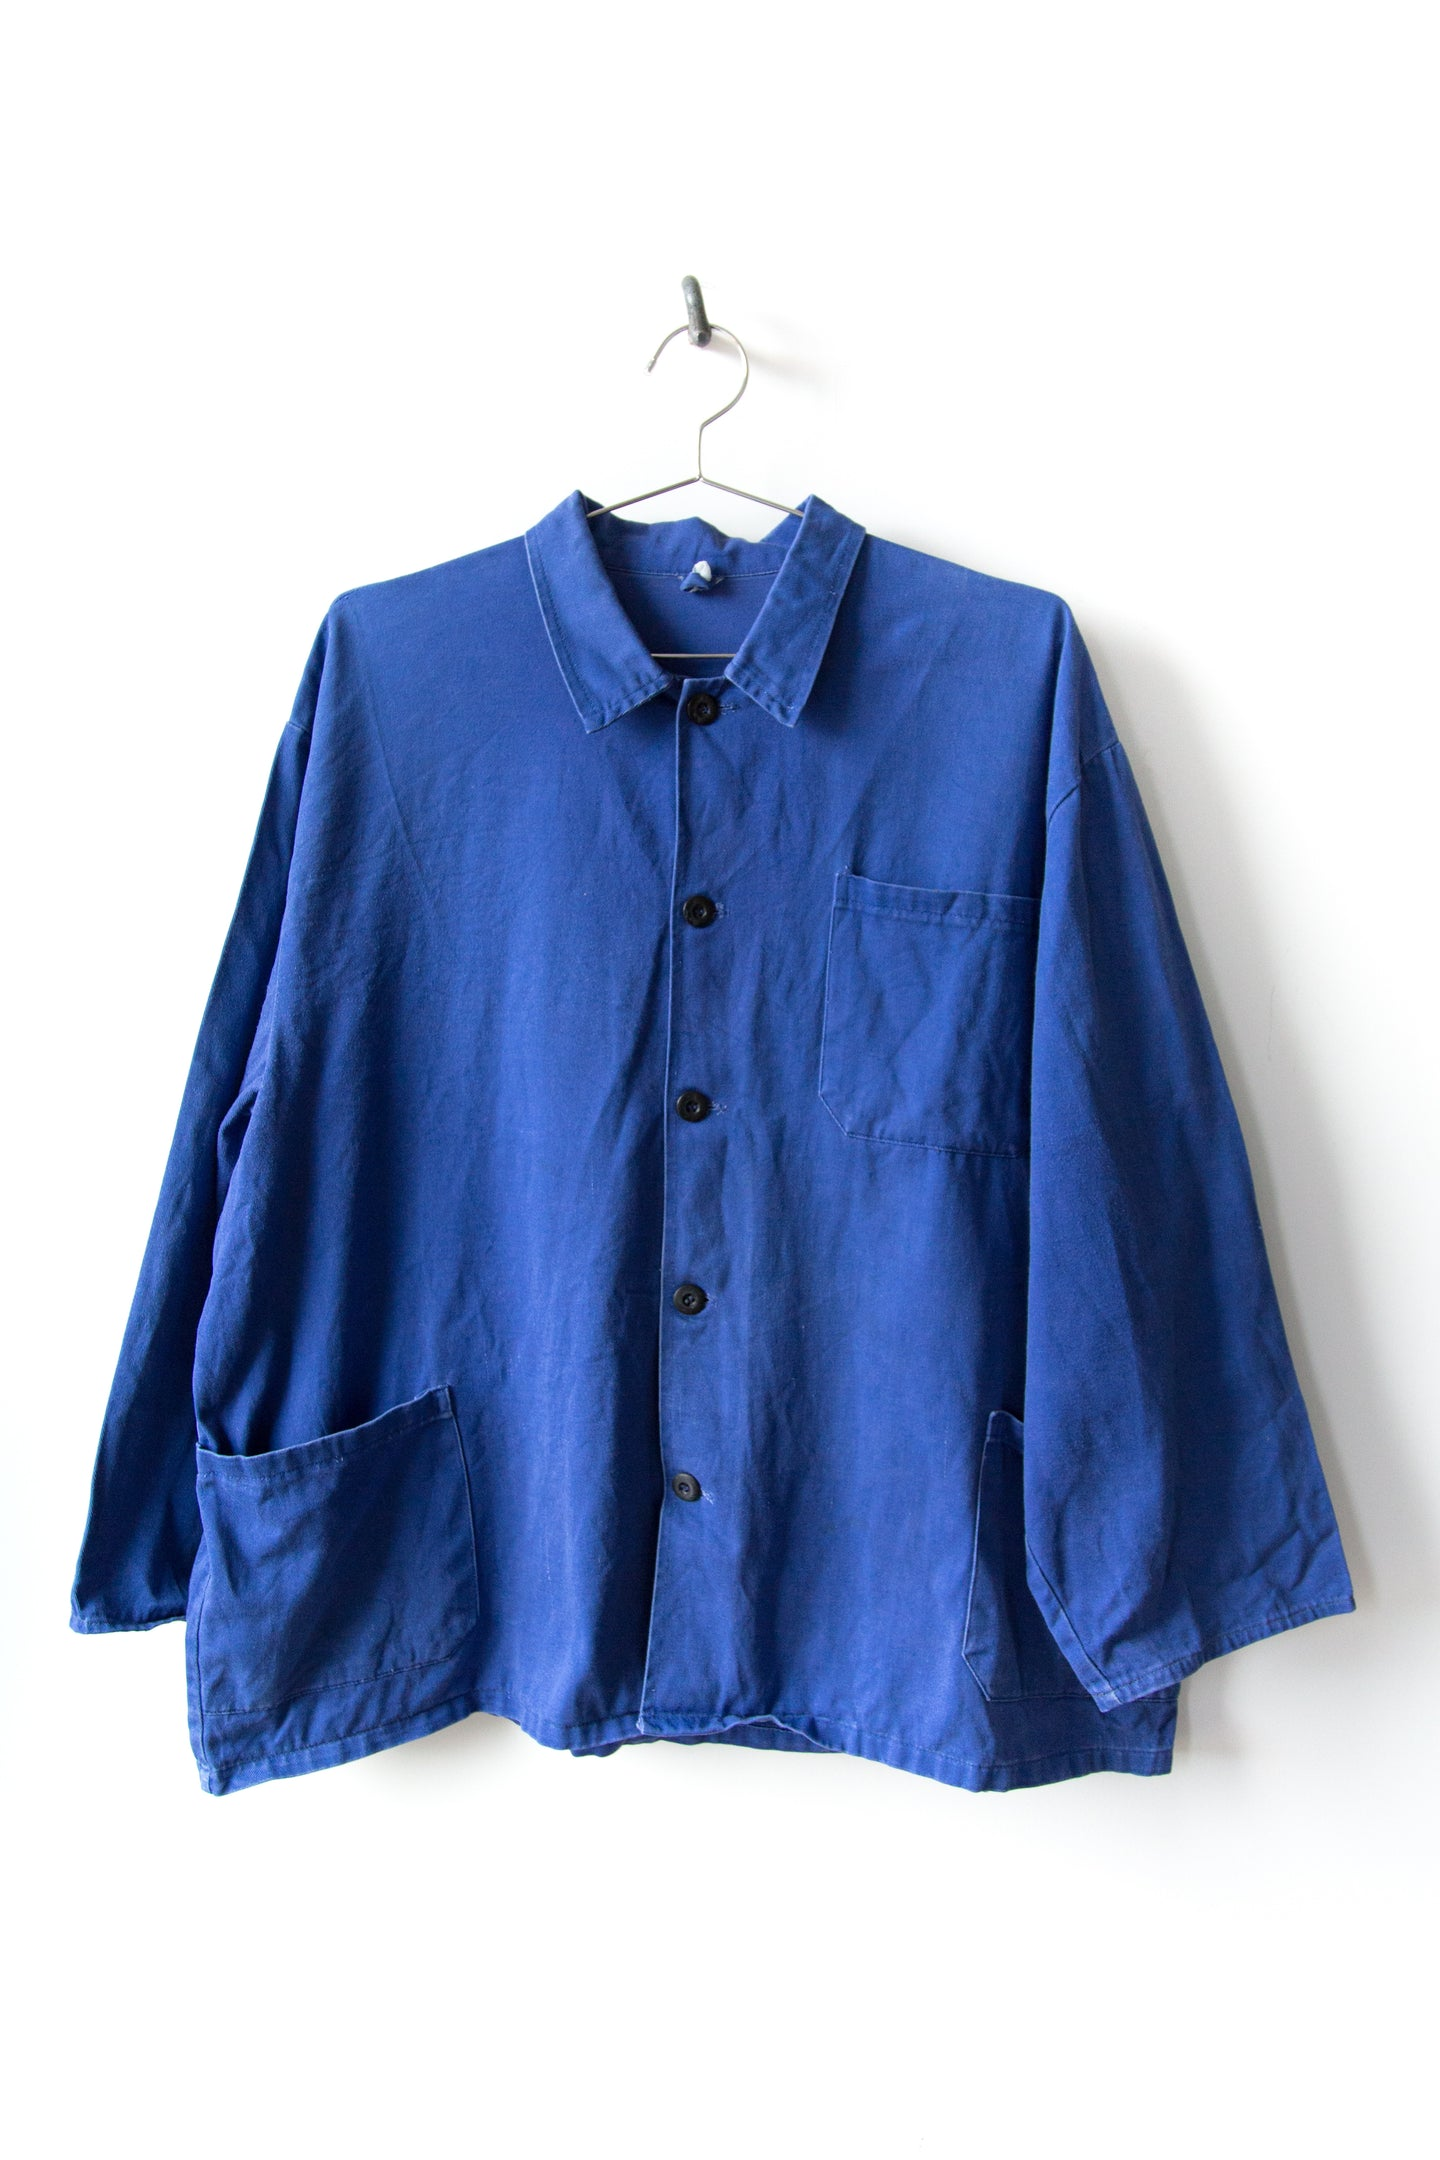 Three Pocket French Chore Jacket